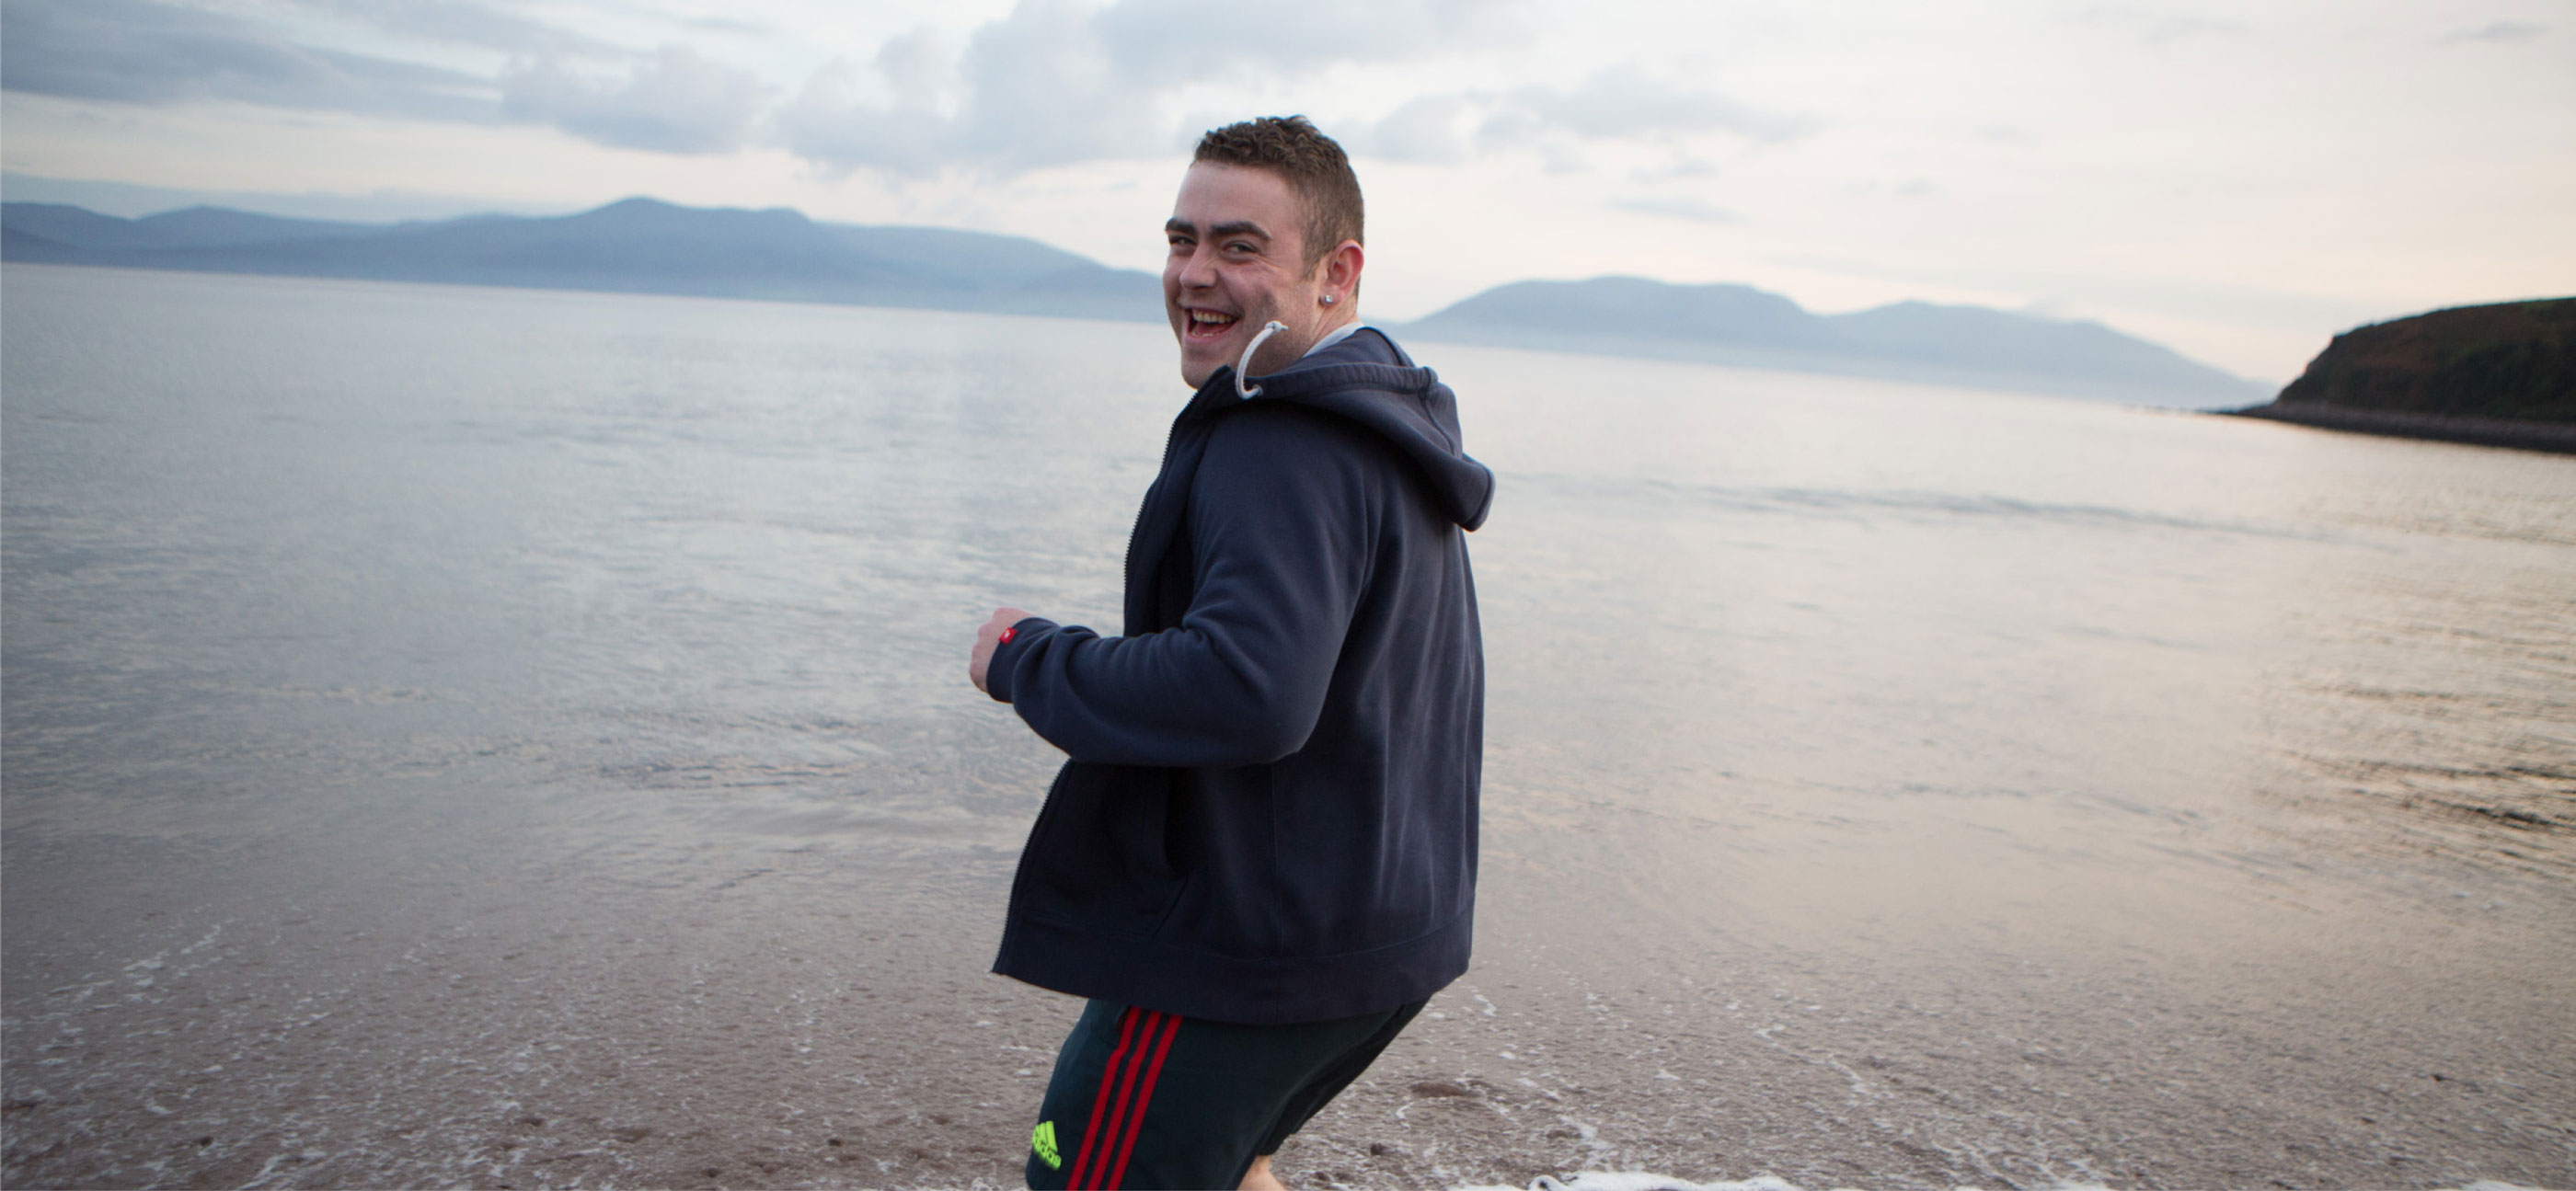 Novas photography production. Image of laughing man by the sea with mountains in background.